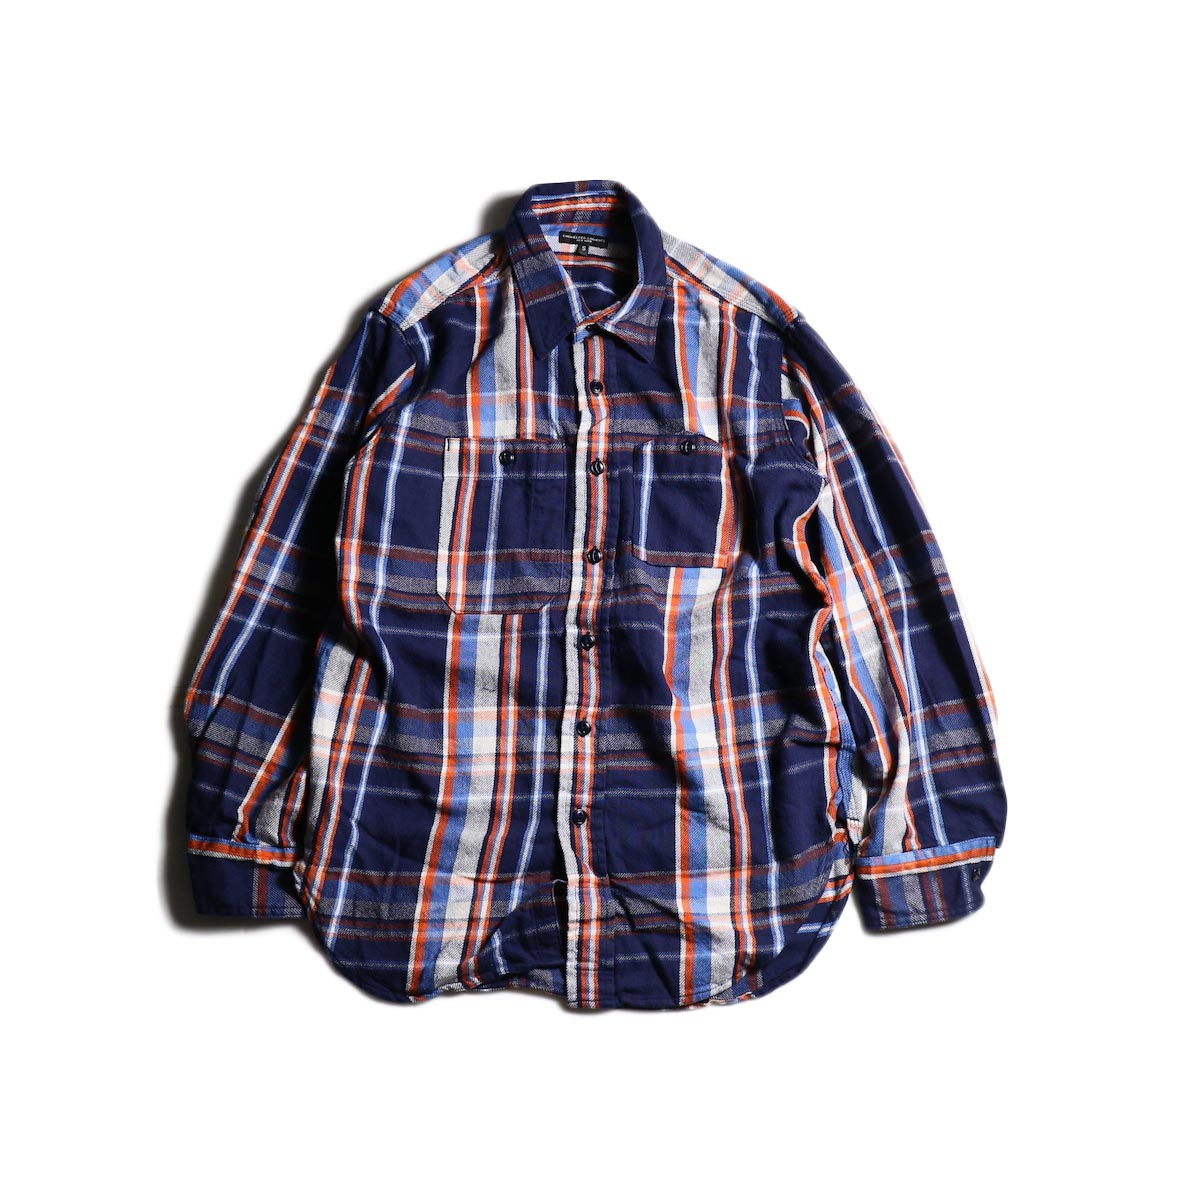 Engineered Garments / Work Shirt -Twill Plaid (Navy/Org/Lt.Blu)